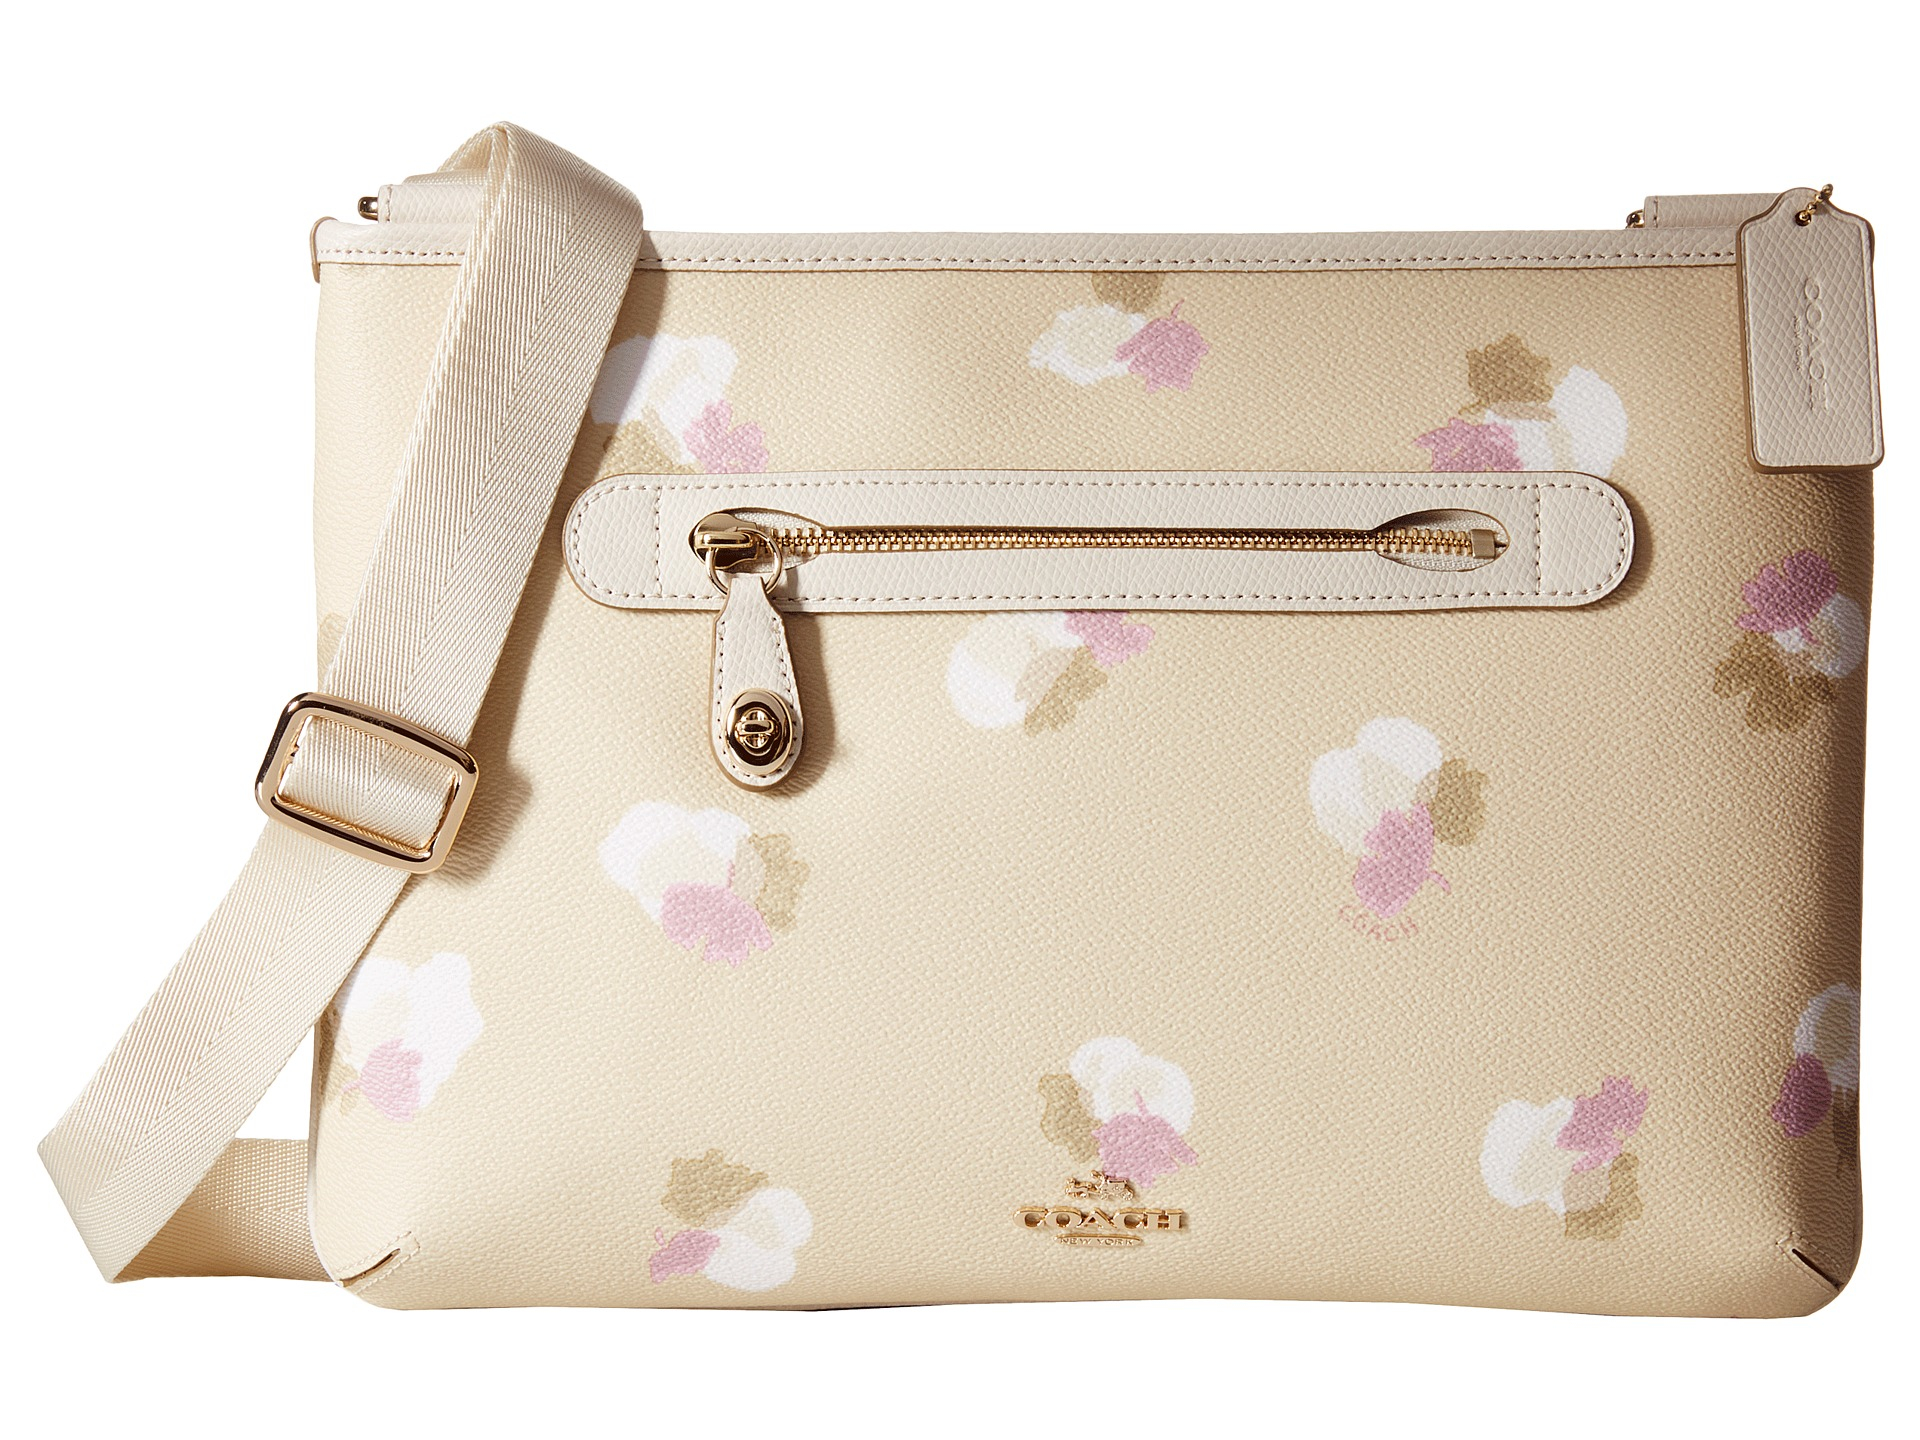 e68d1b5d3011 Lyst - COACH Whls Floral Printed Taylor Crossbody in Natural